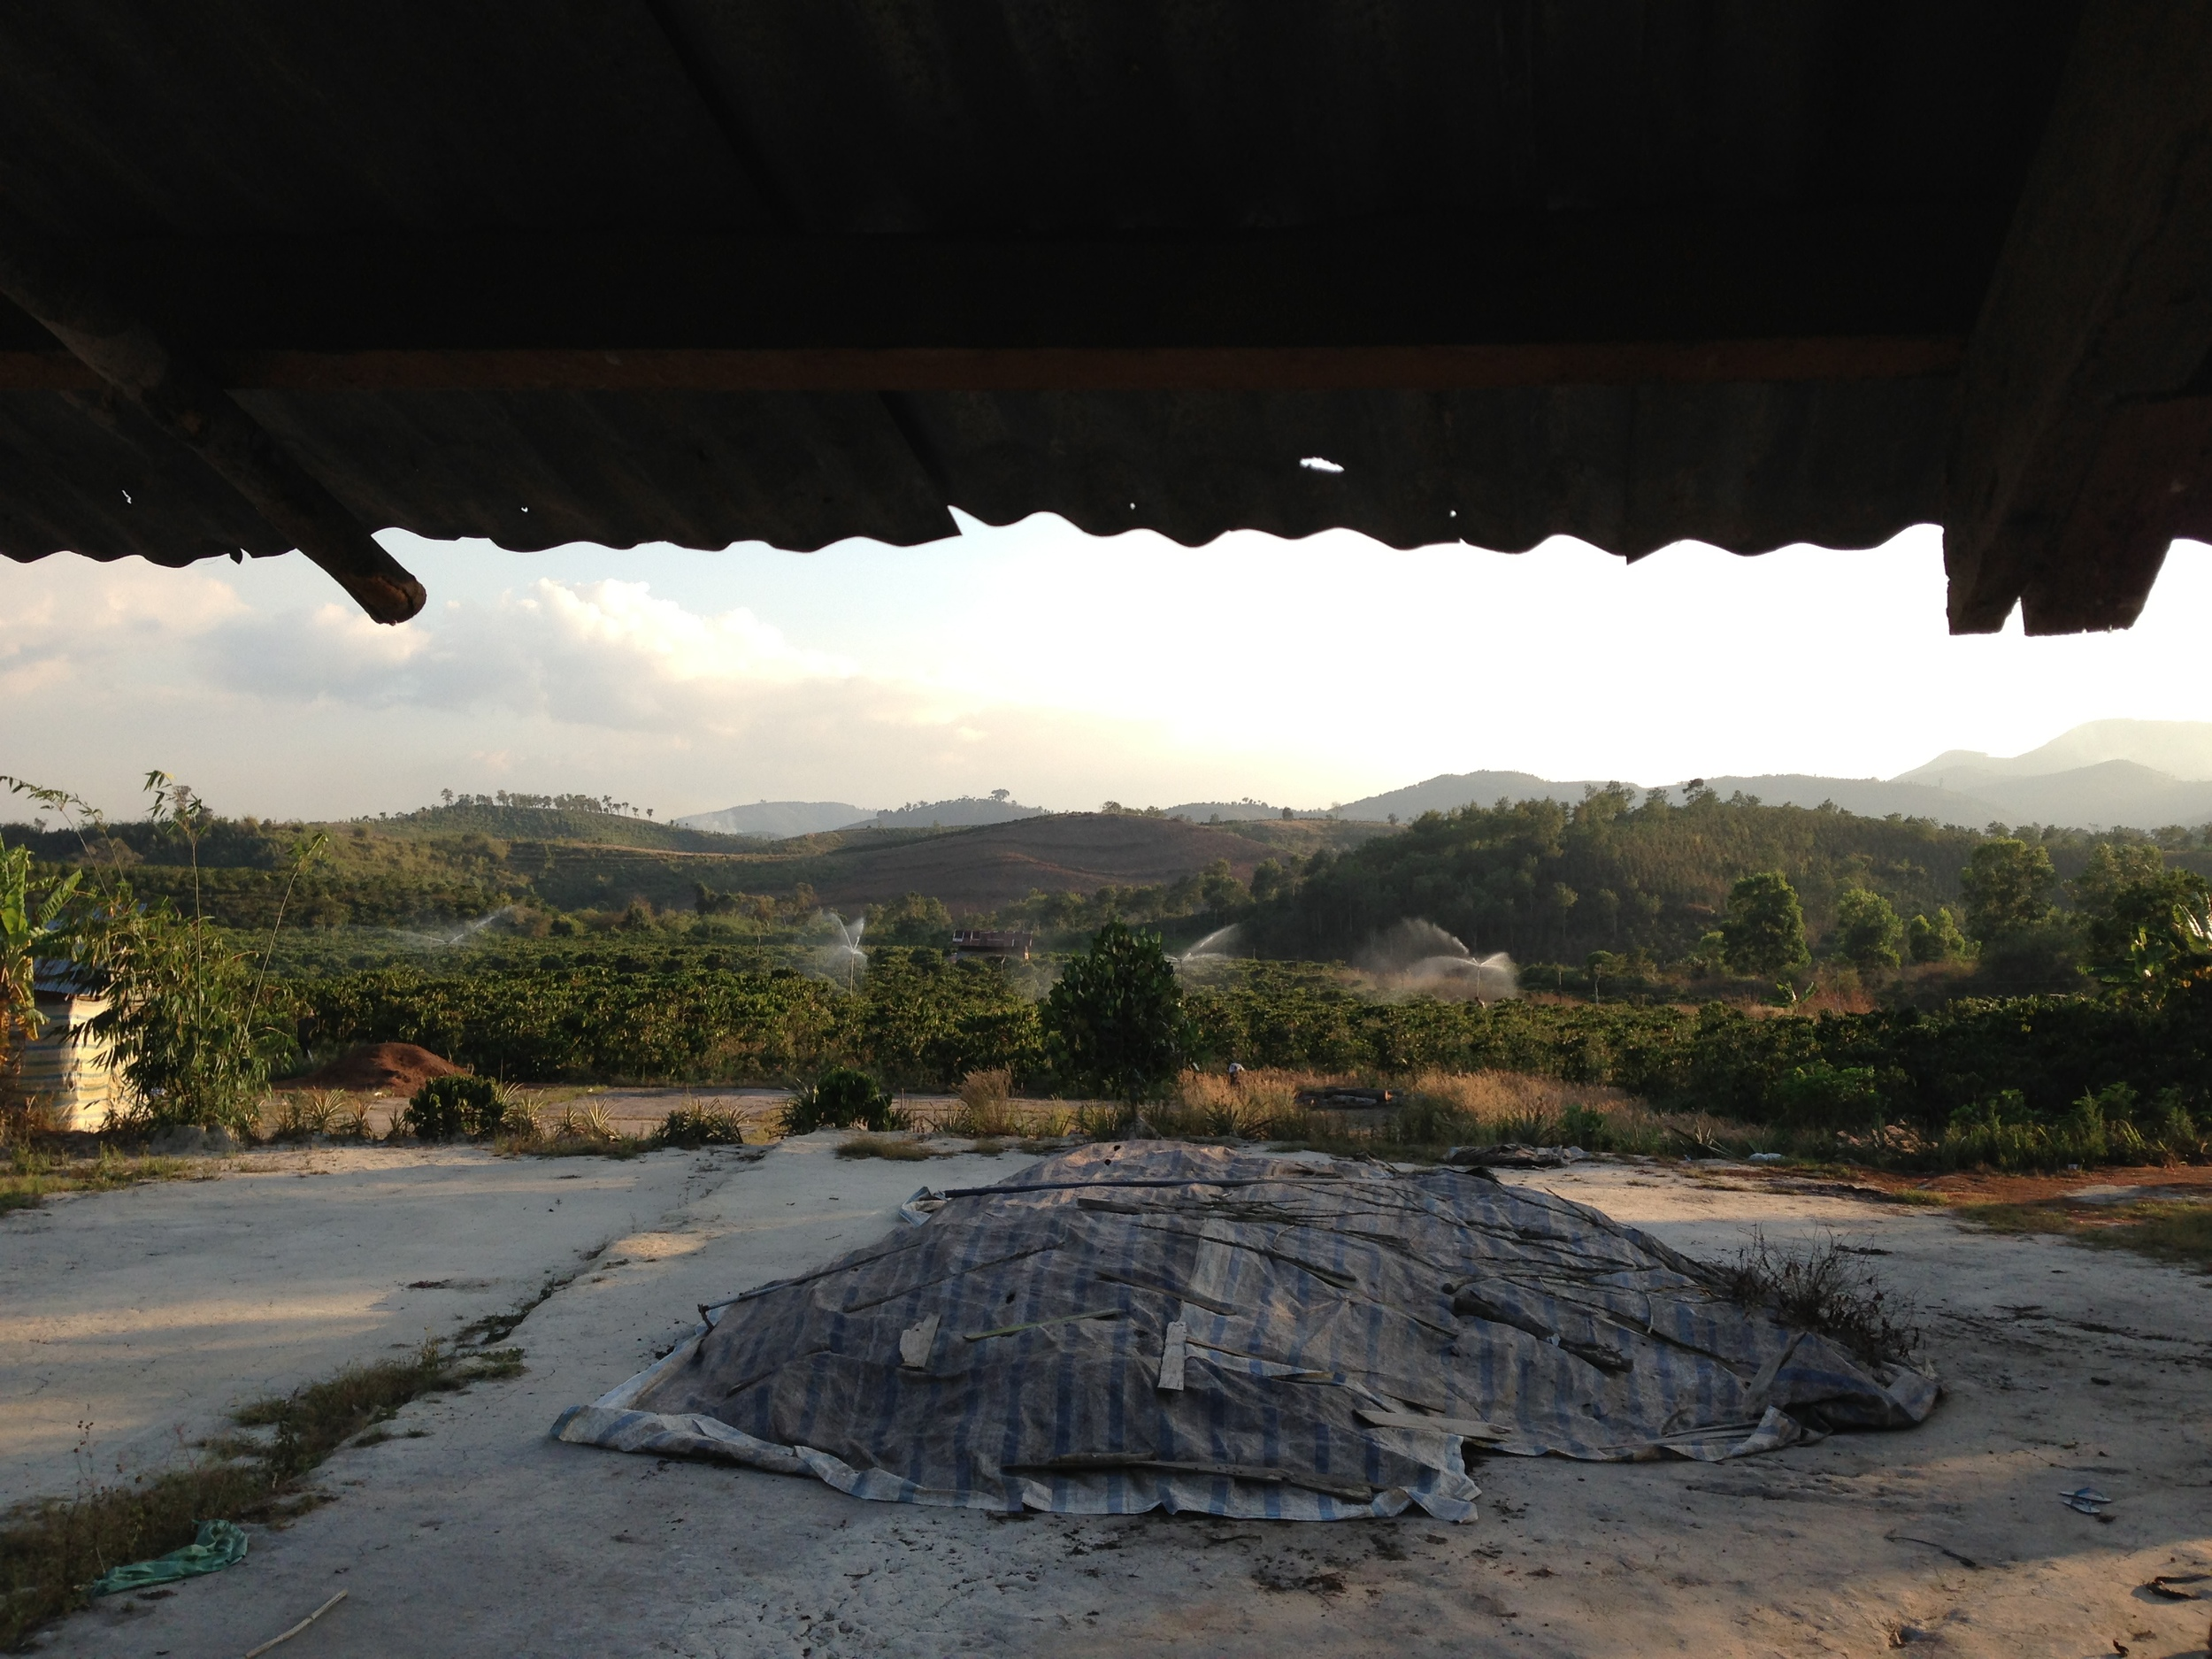 The view from Chu's farmhouse porch. (foreground: tarps on organic fertilizer)